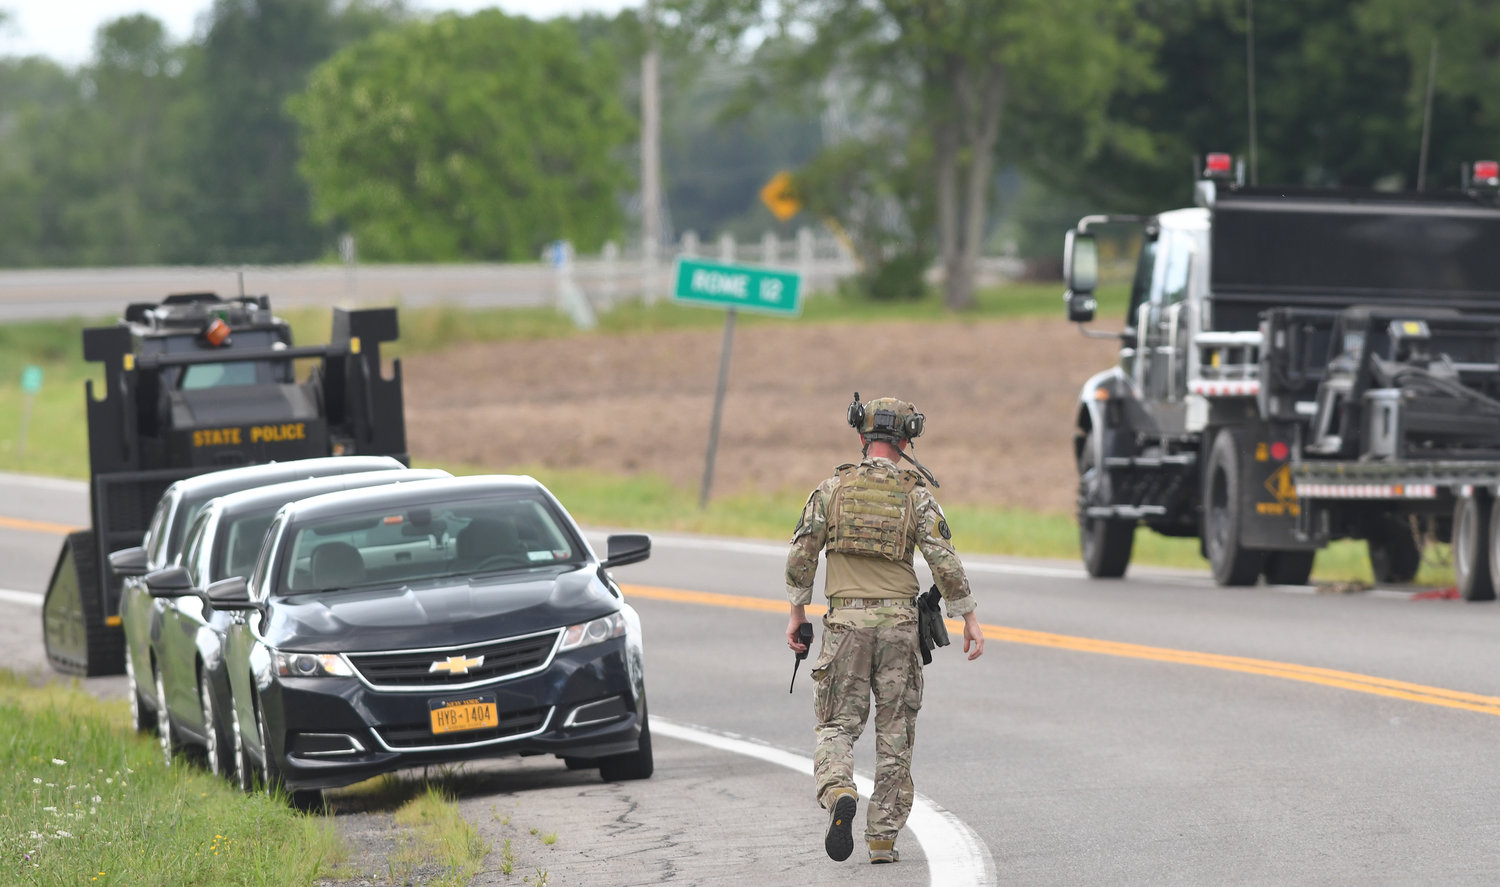 READY AND WAITING — A SWAT trooper waits in the law enforcement staging area at routes 31 and 46 during Friday afternoon's standoff. State police said the suspect surrendered peacefully after about five hours.